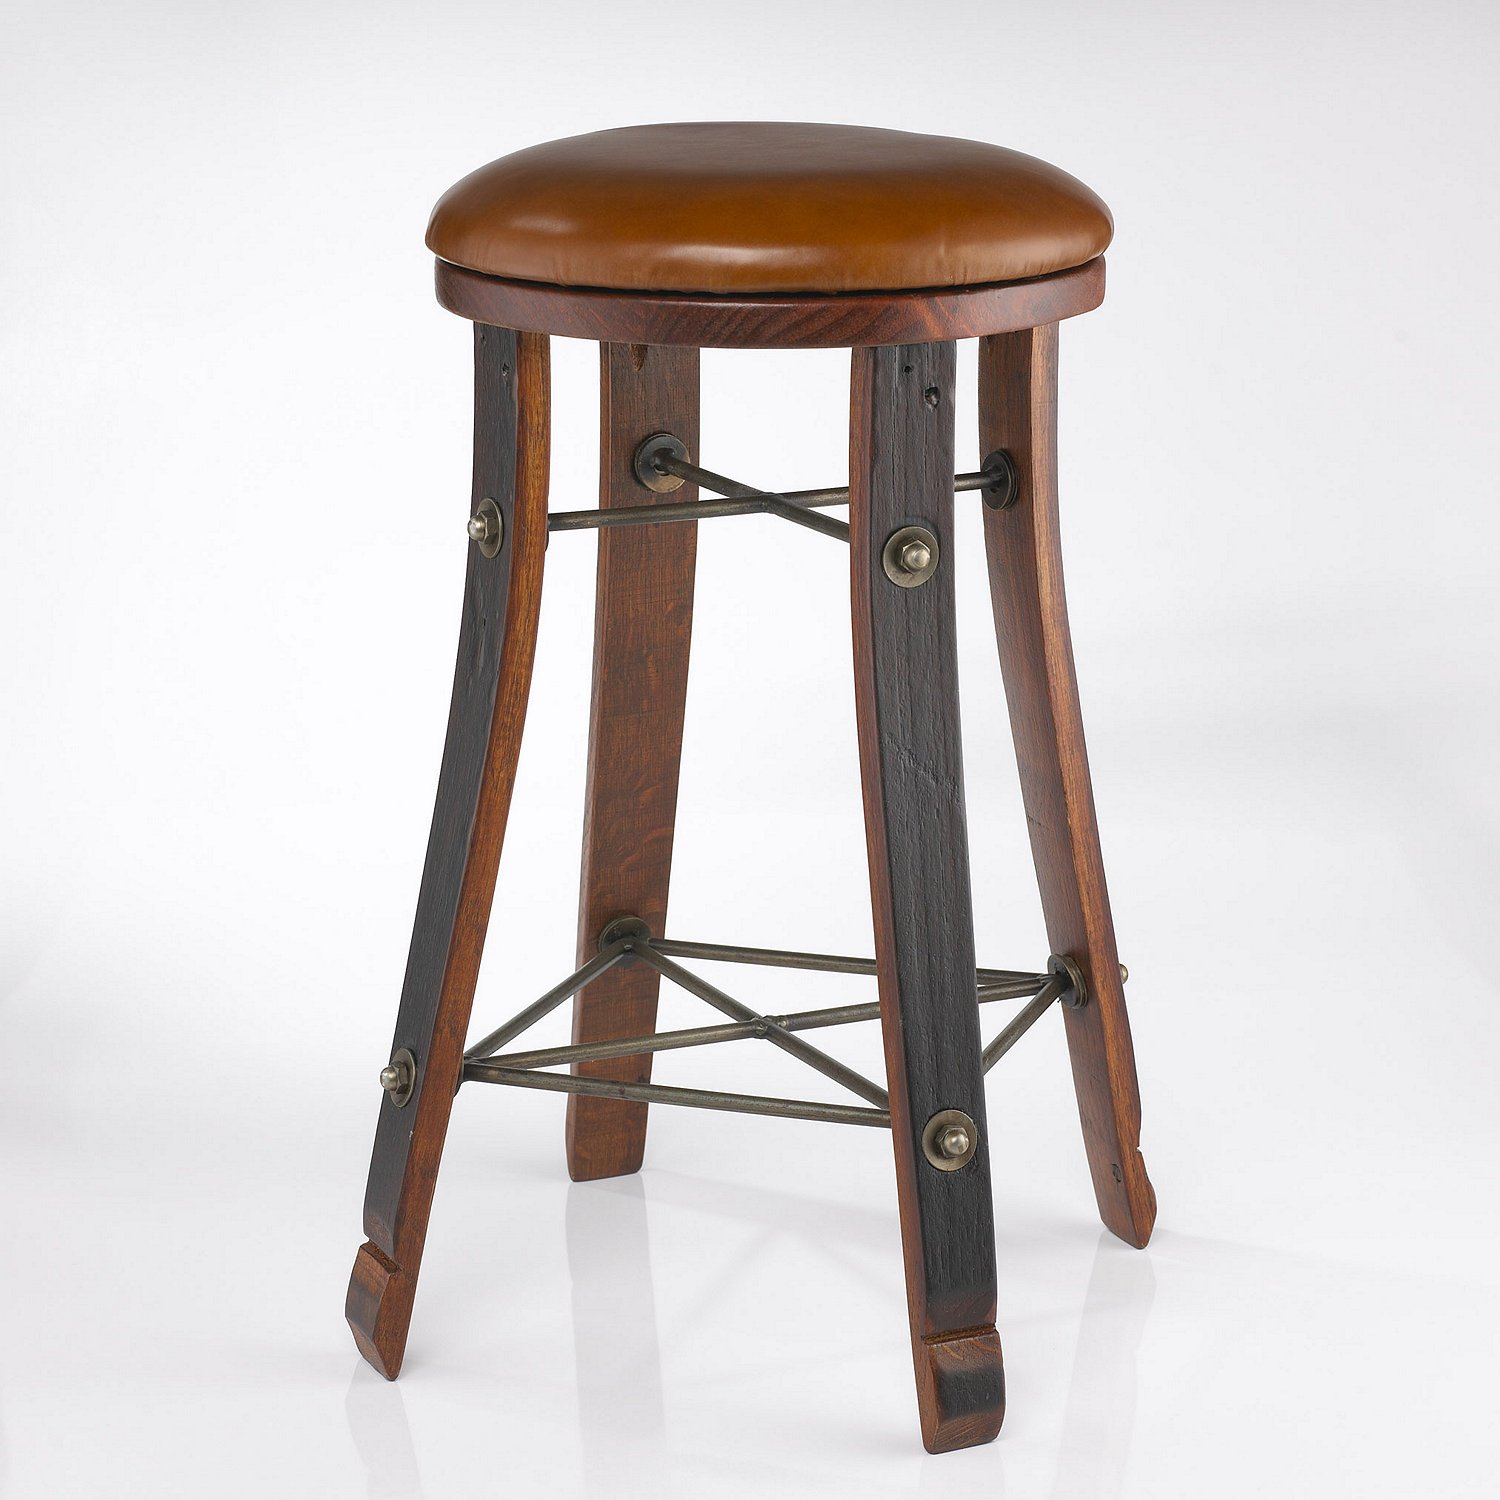 ... Bar Stool With Leather Seat. Preparing Zoom